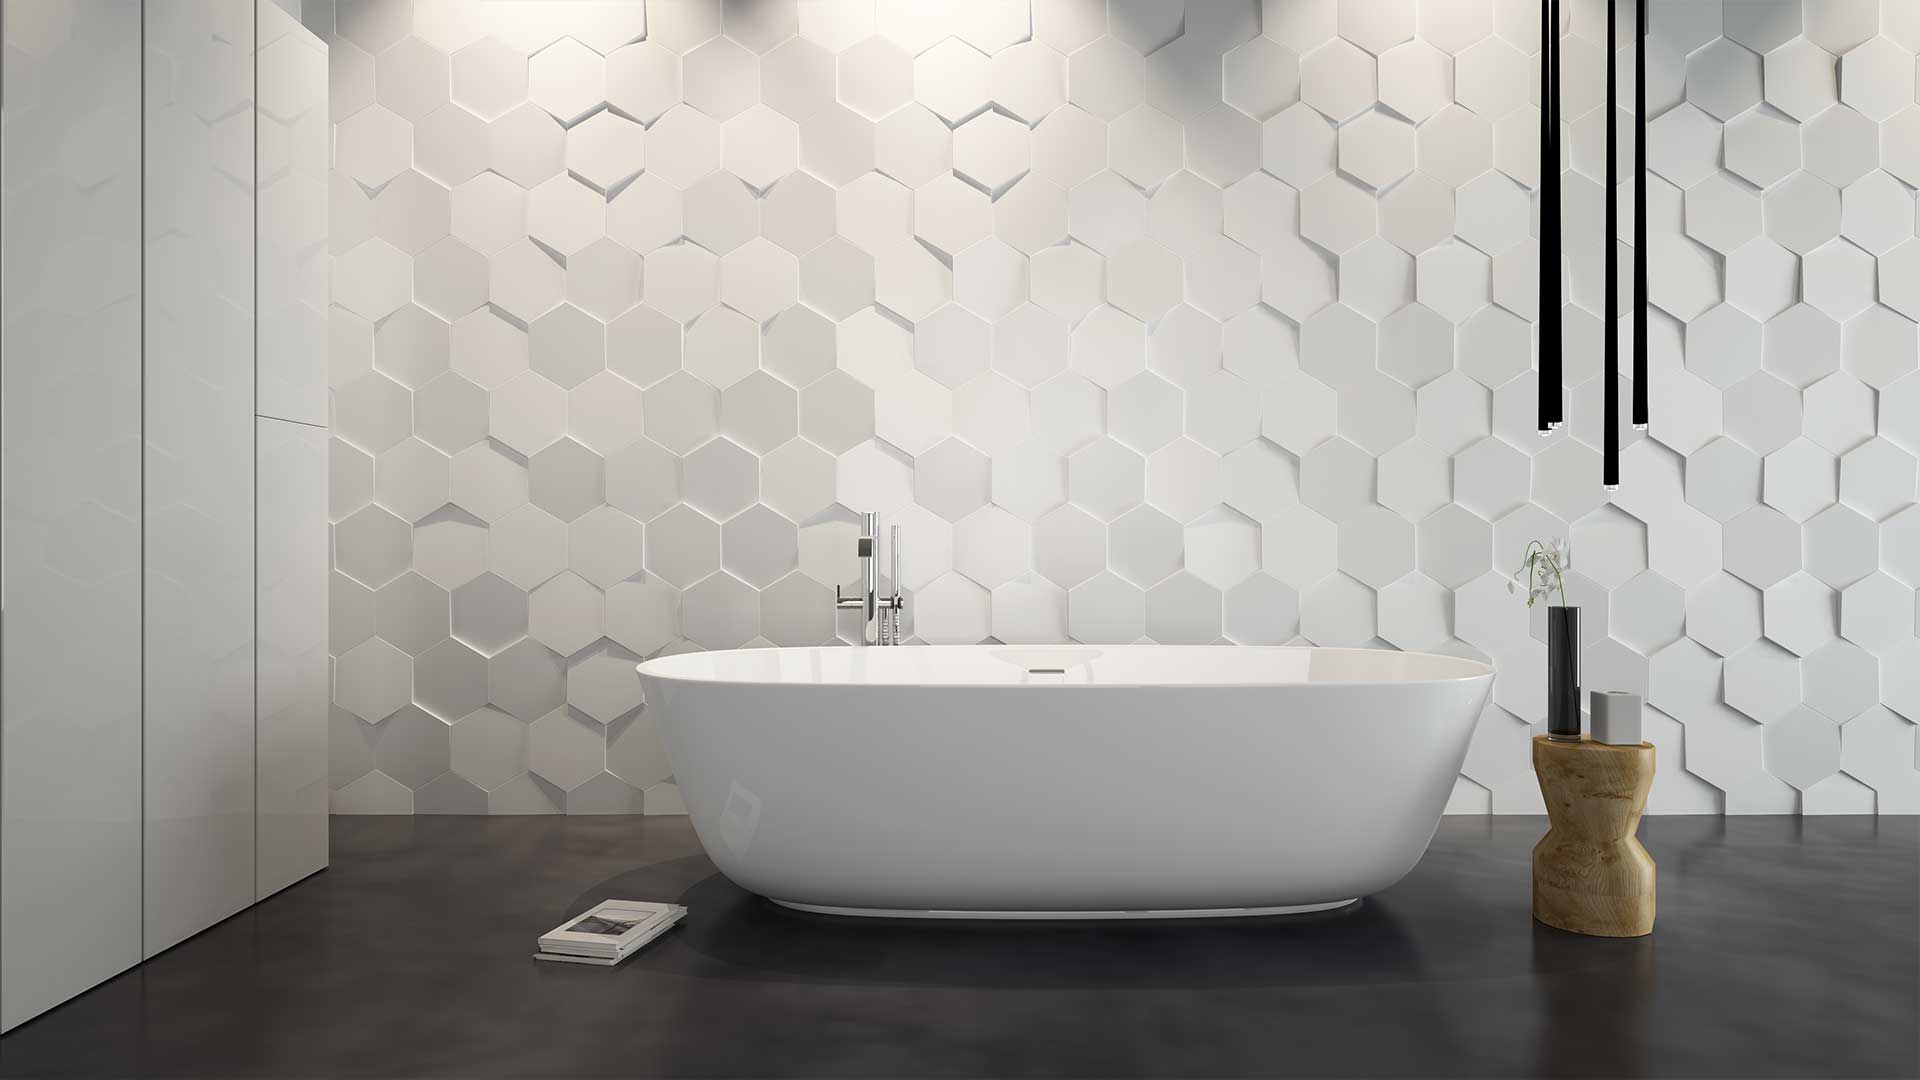 27 wonderful pictures and ideas of italian bathroom wall tiles Bathroom wall and floor tiles ideas